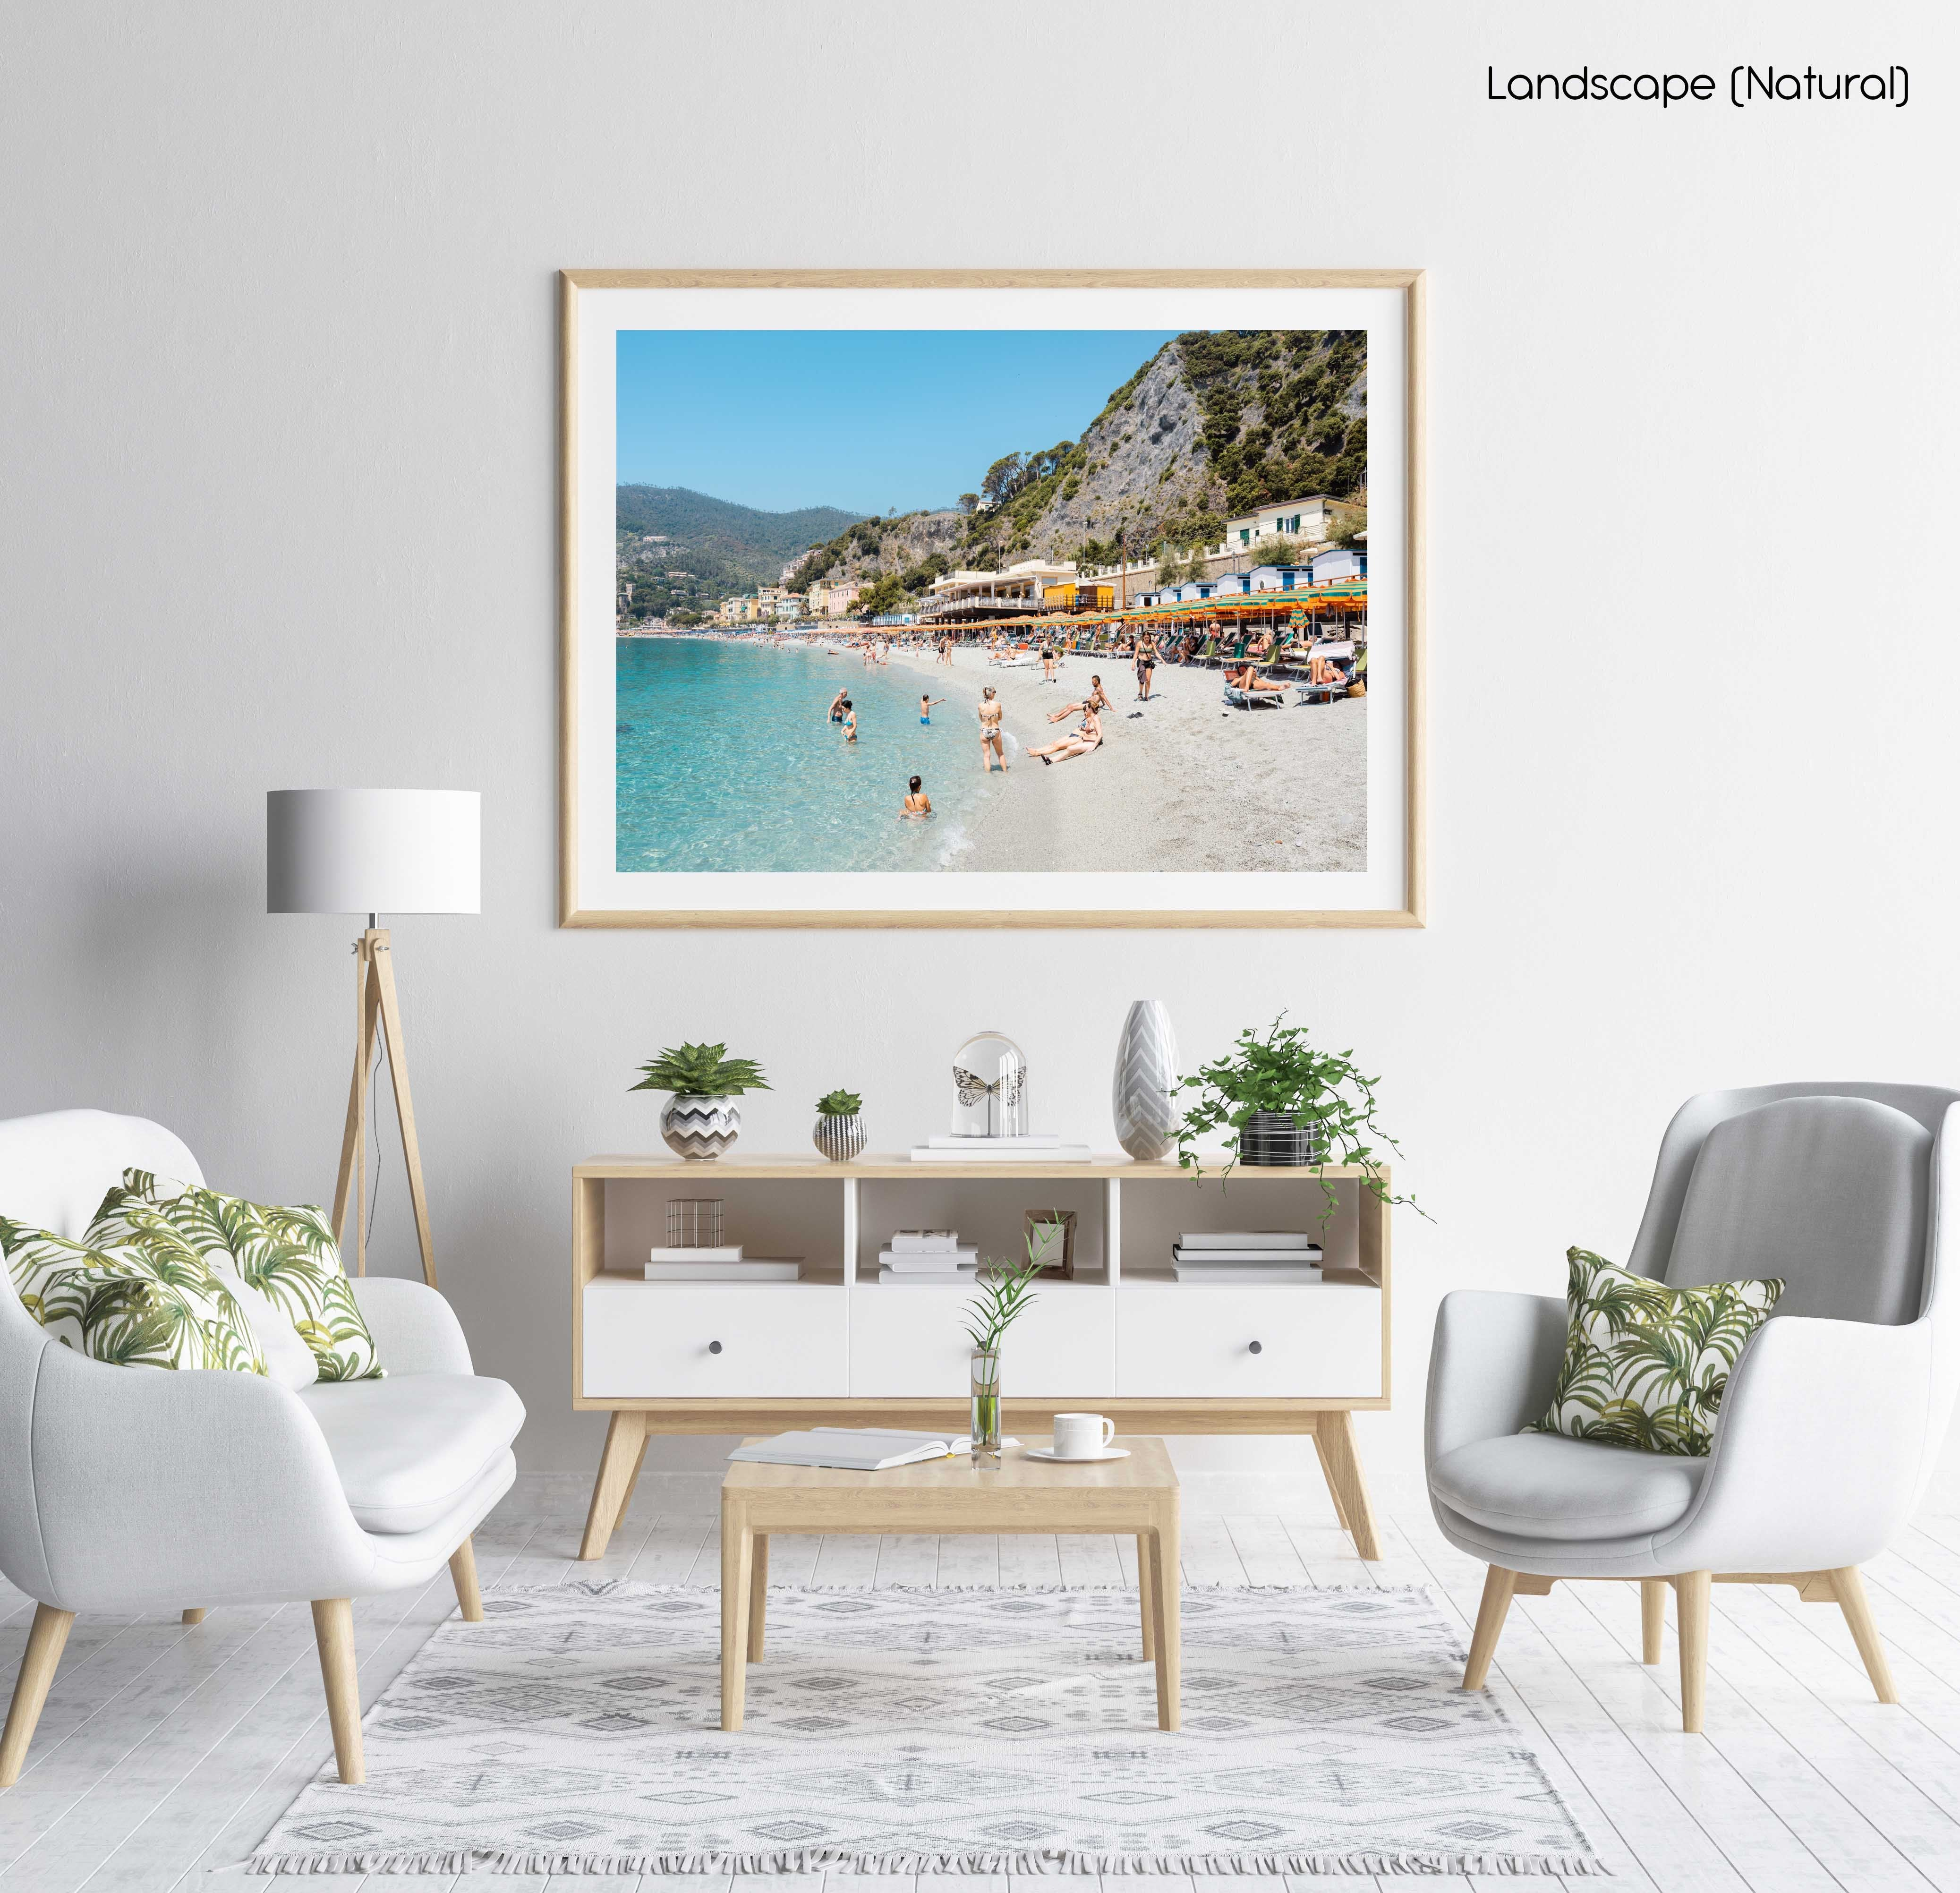 People swimming and sitting at colorful Monterosso beach in Cinque Terre in a natural fine art frame